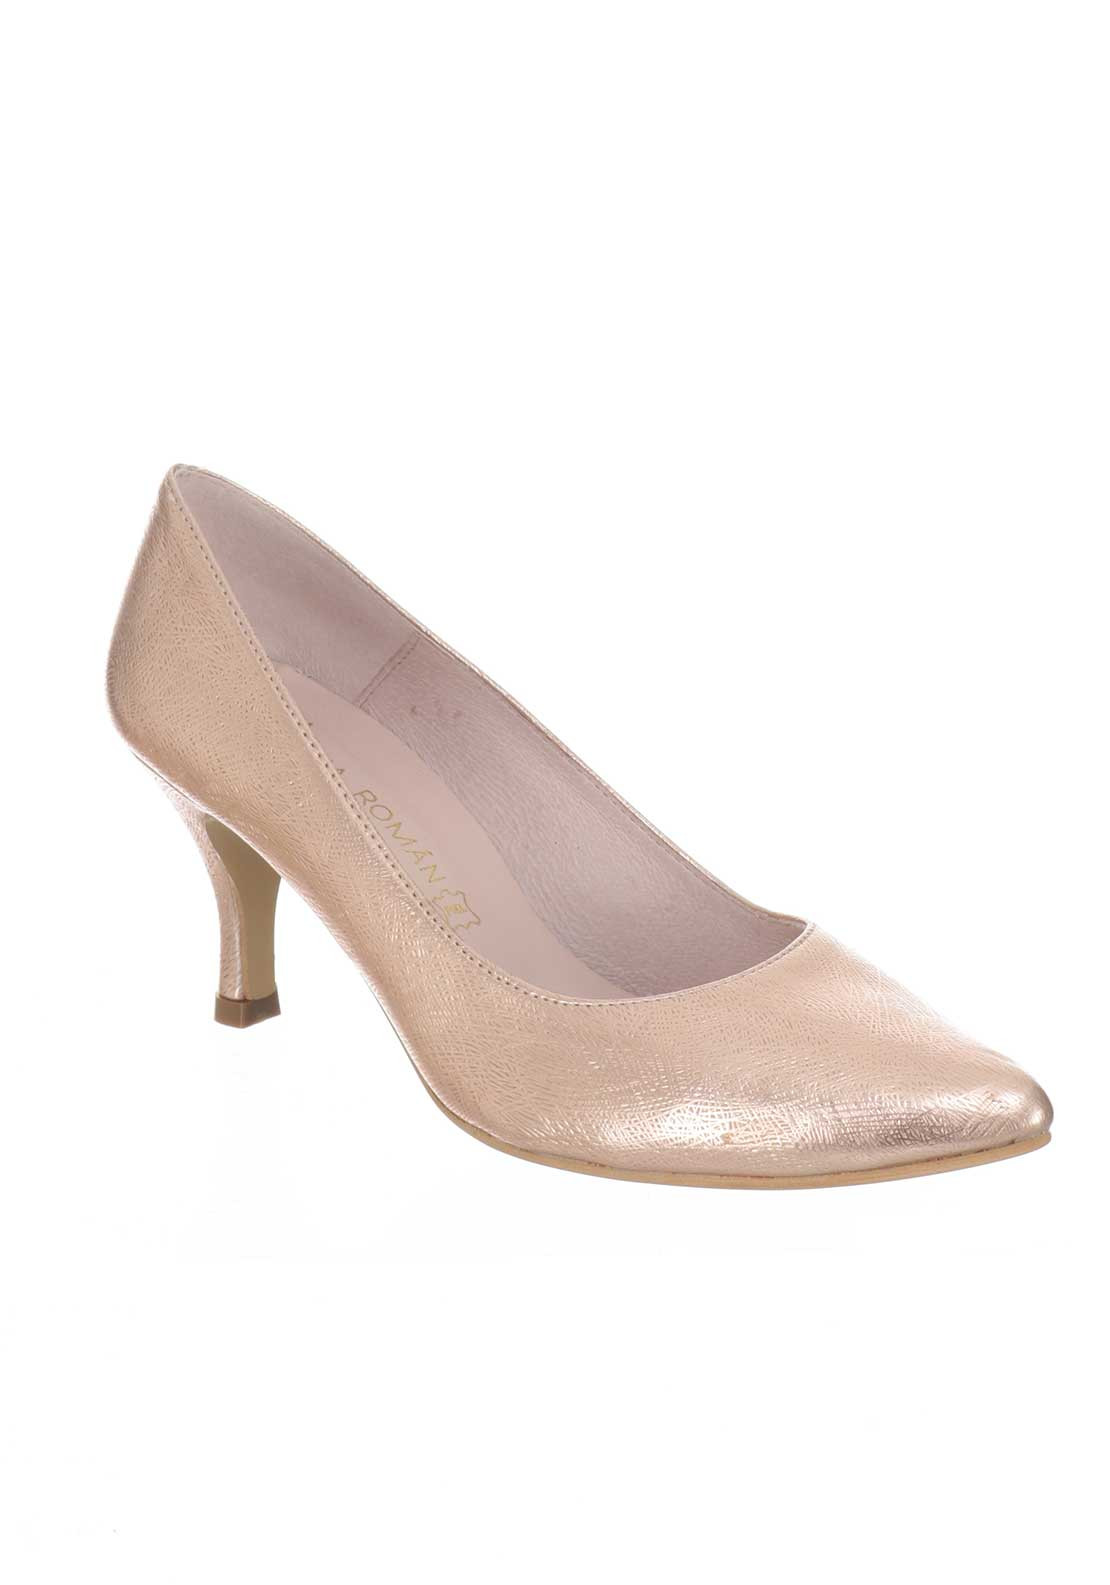 Ana Roman Textured Mid Heel Court Shoes, Rose Gold